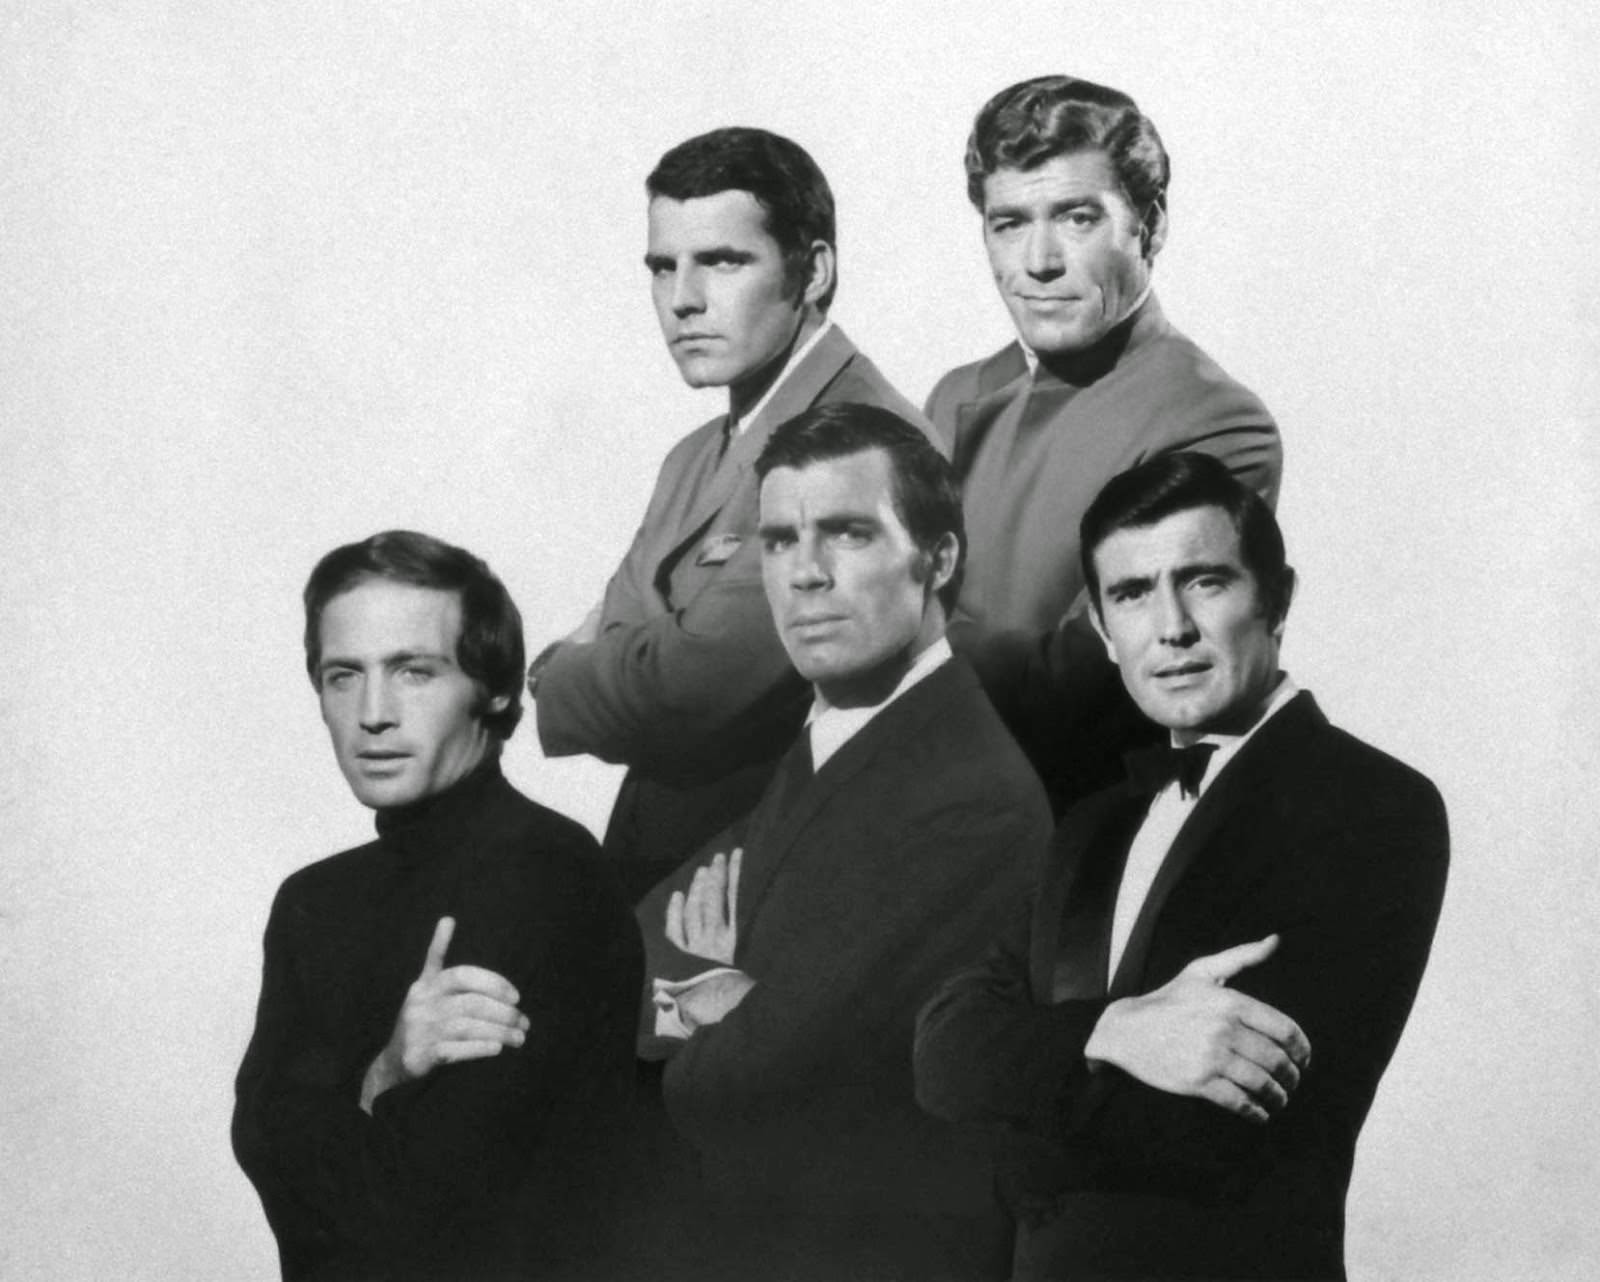 A composite image of the five top candidates (including ultimate choice George Lazenby, bottom right). Published in the October 11, 1968, issue of LIFE.